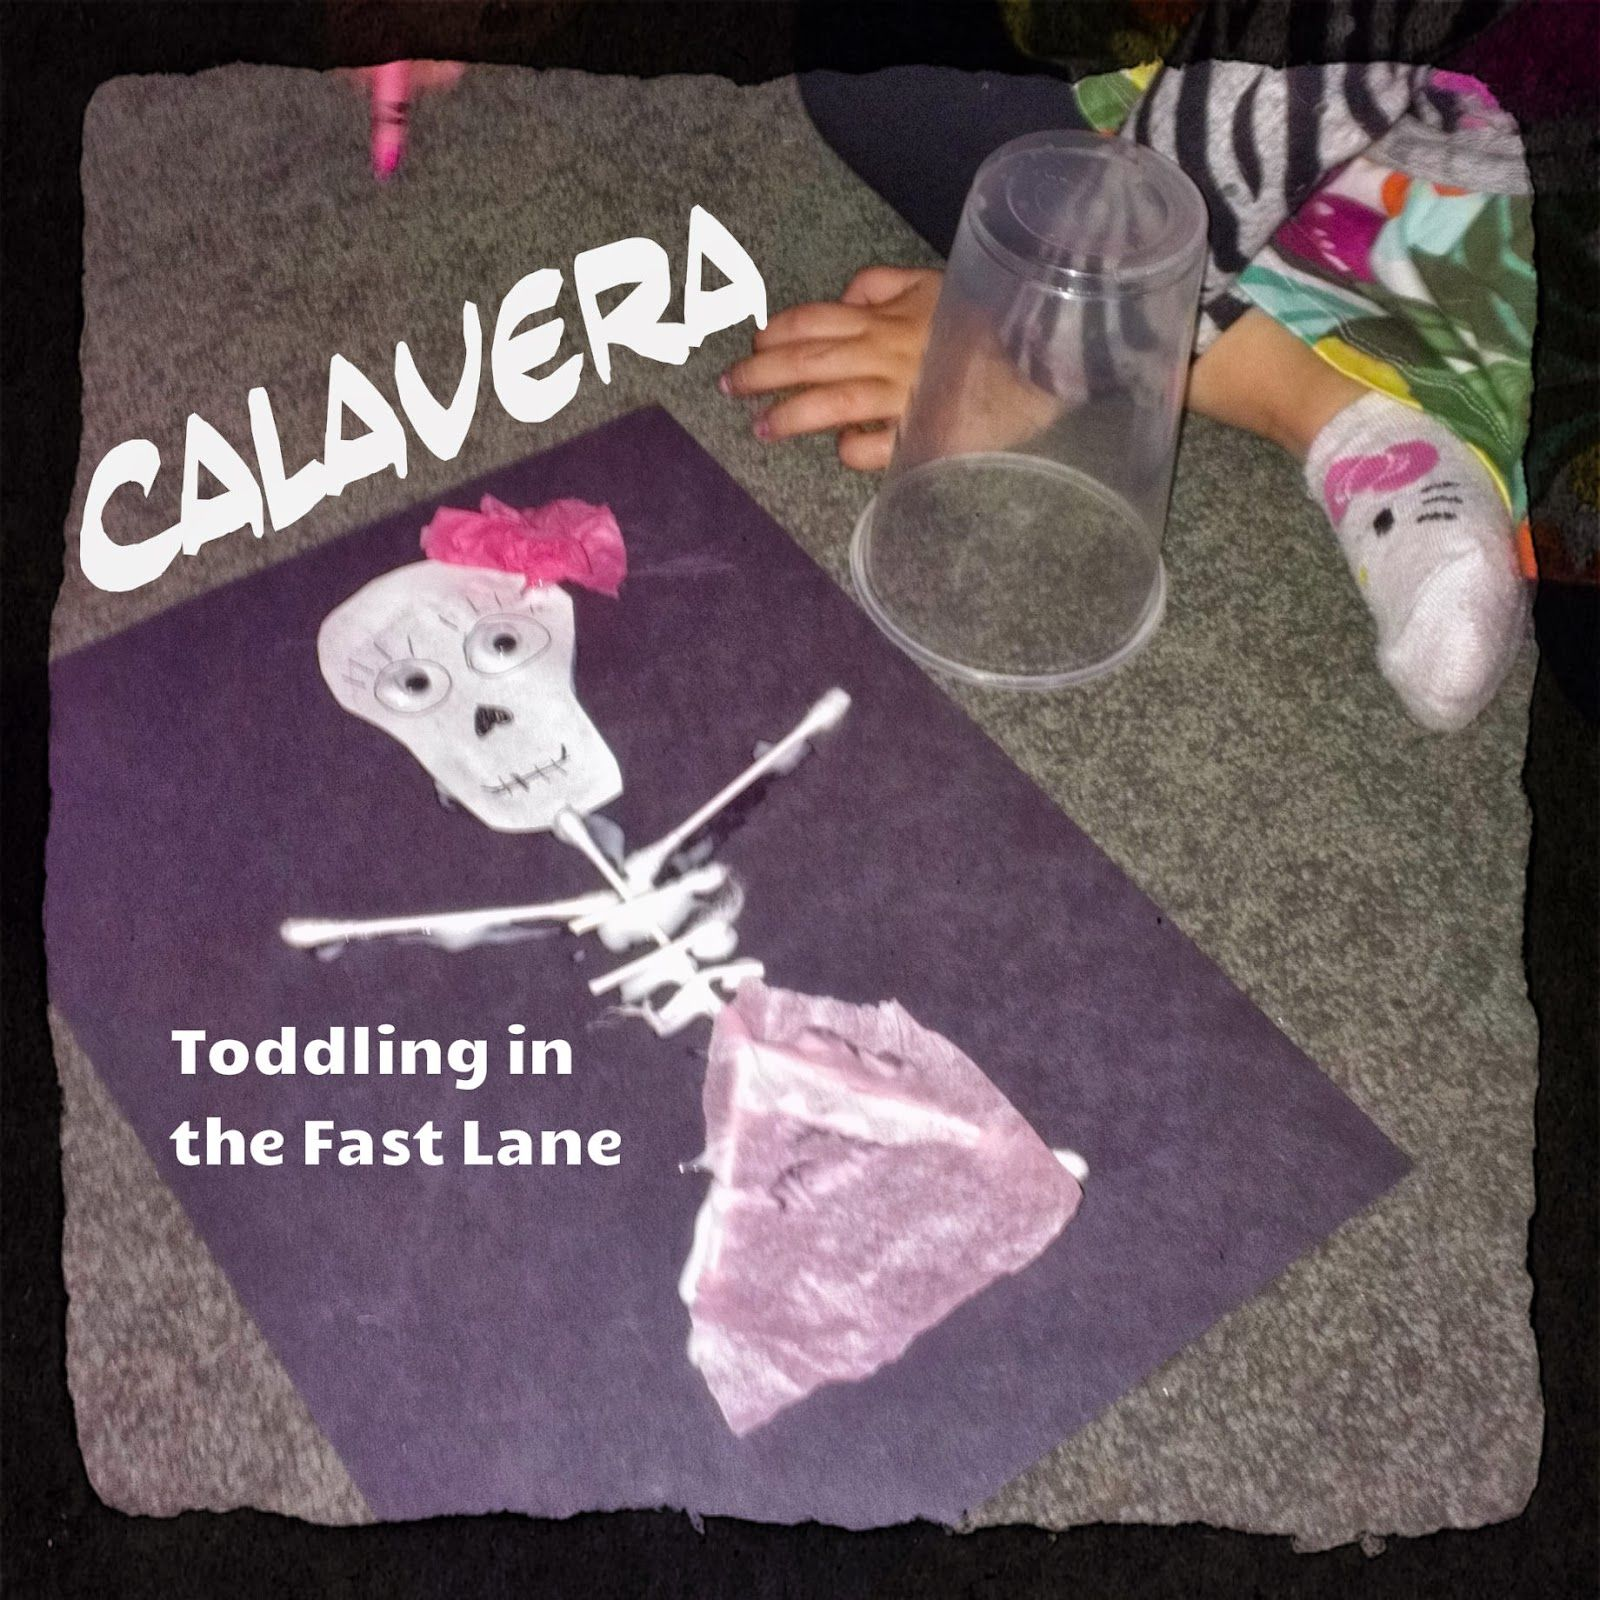 Song + Link to Pinning Party Toddling in the Fast Lane: Diez Esqueletos